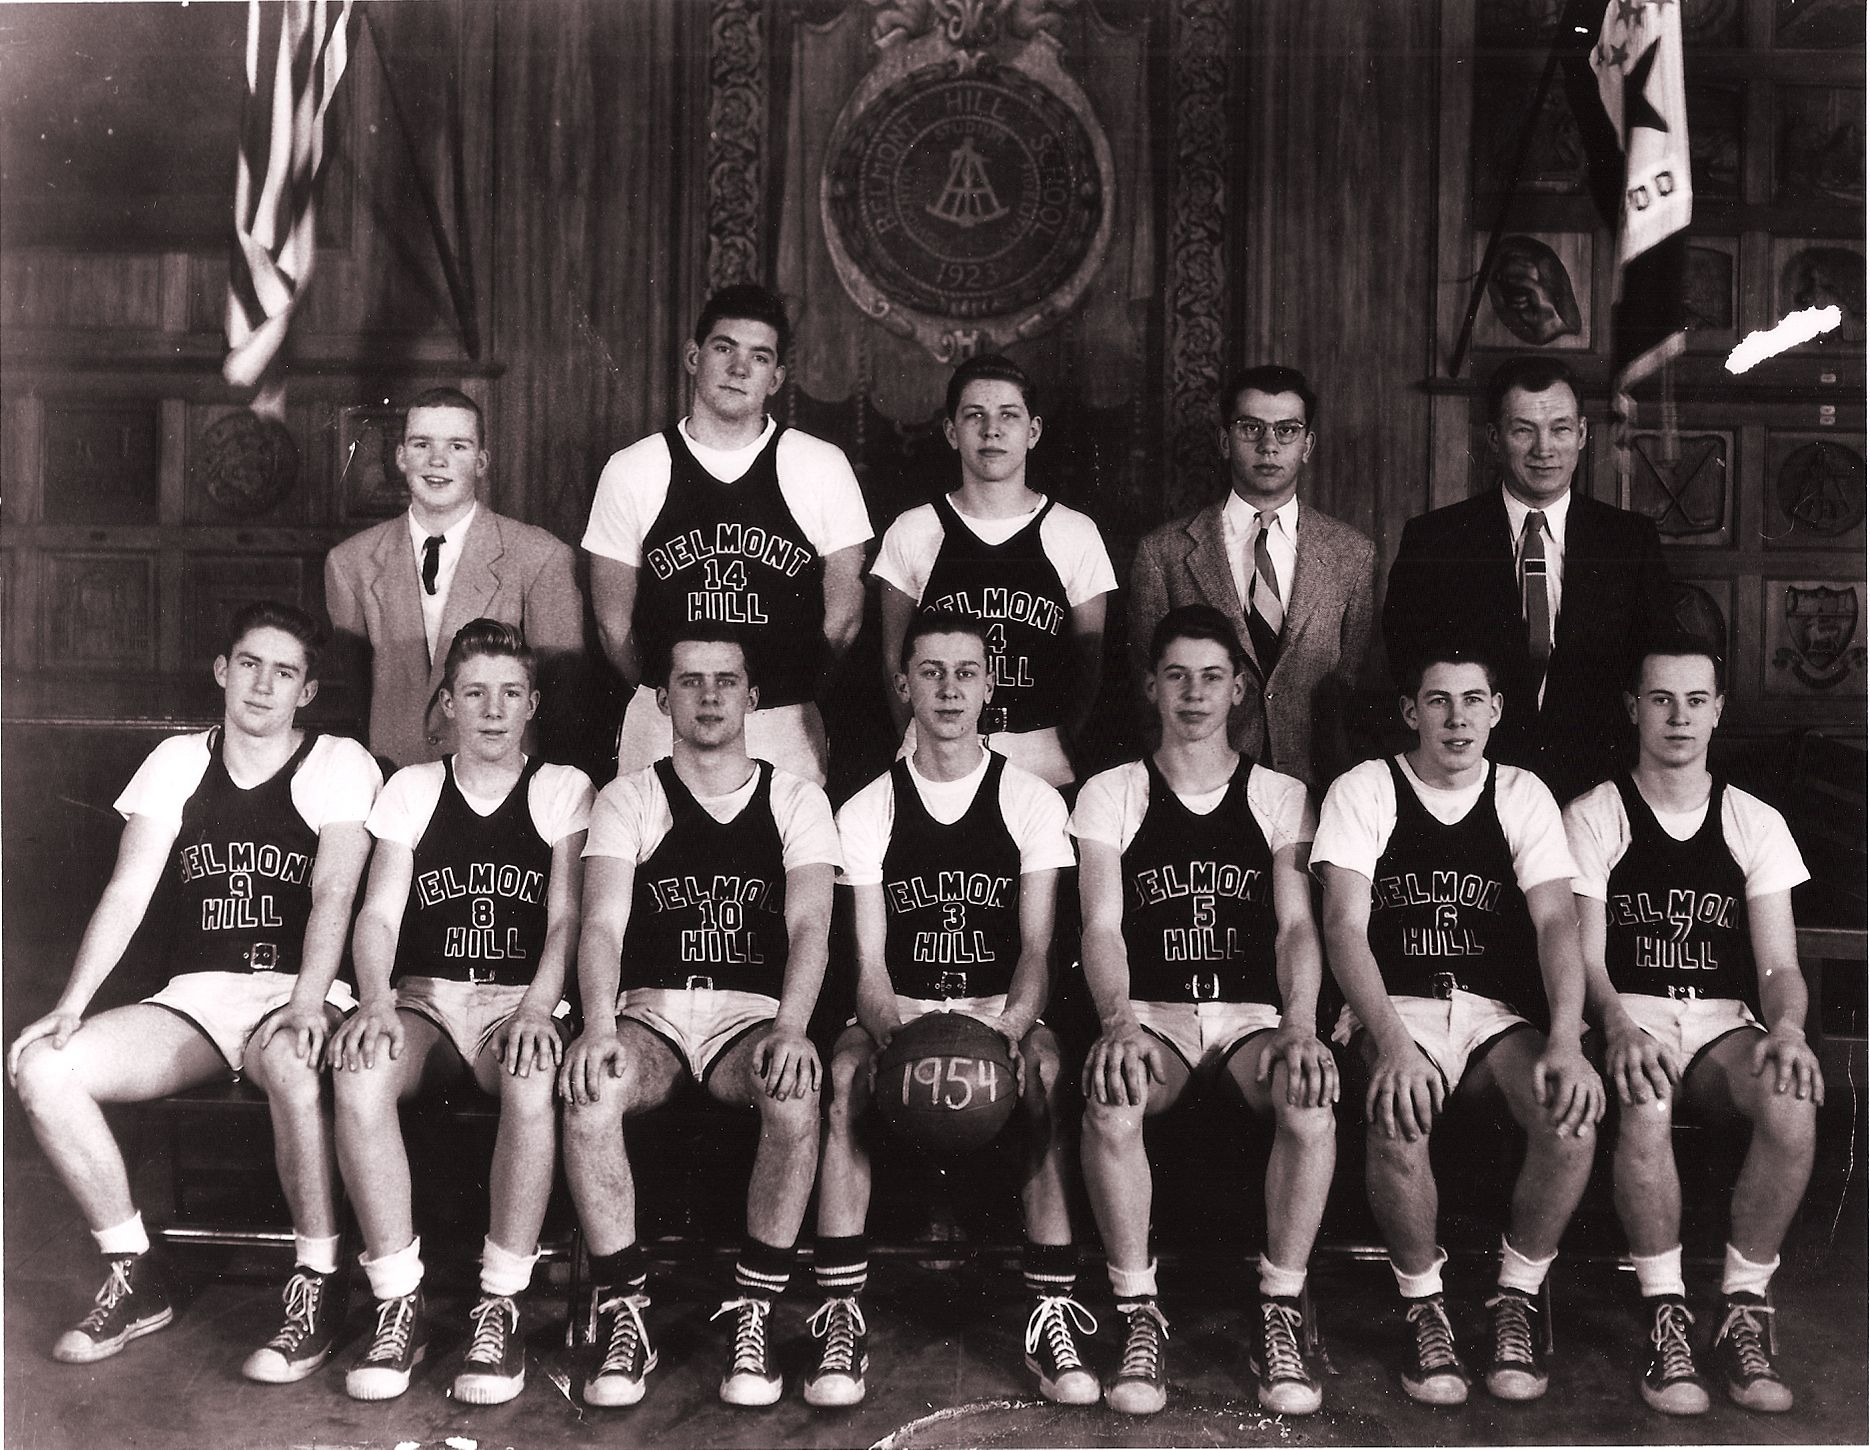 First Row: Burgess, R. Woodbury, Meehan,(Capt), P. Repetto, Hathaway, E. Stevens Second Row: Hammond, Hurd, Helms, Blacklow, Mr. Croke